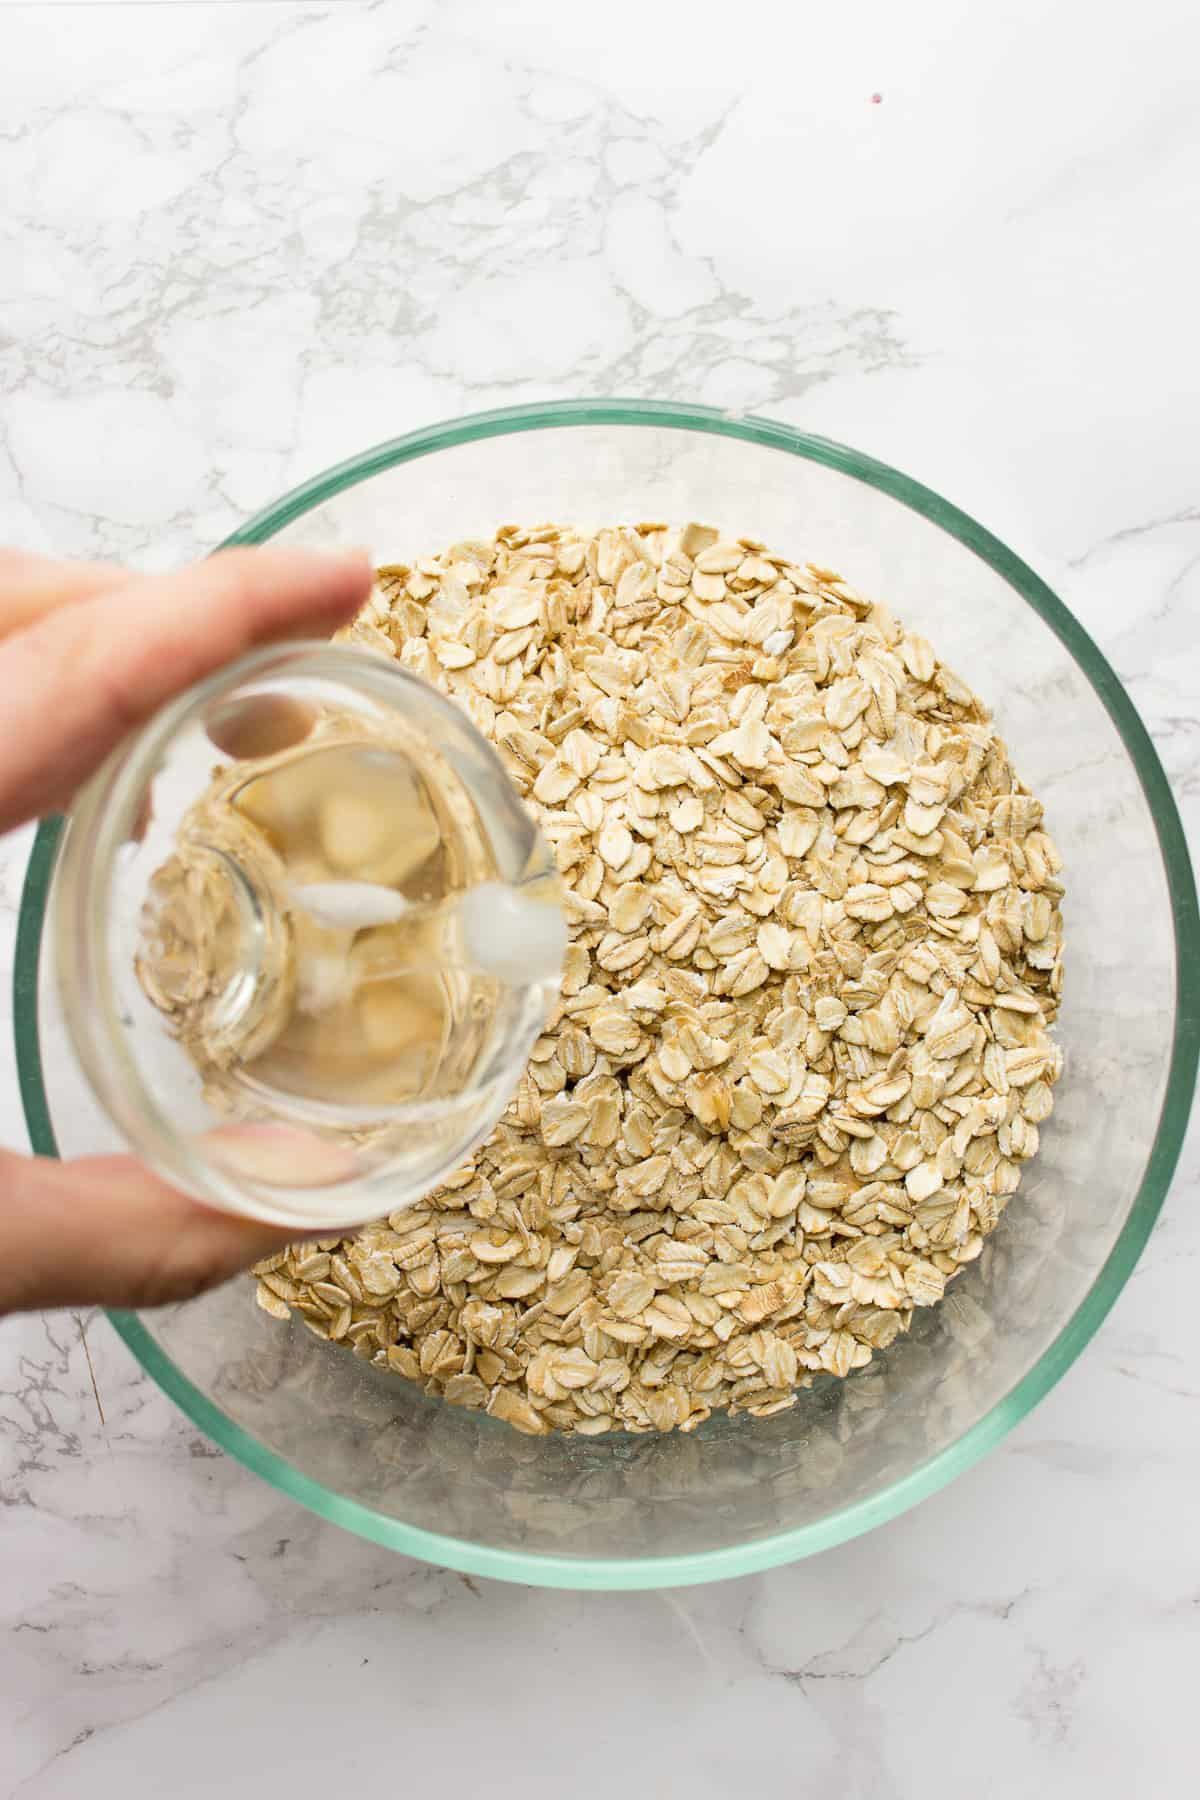 Pouring coconut oil over rolled oats